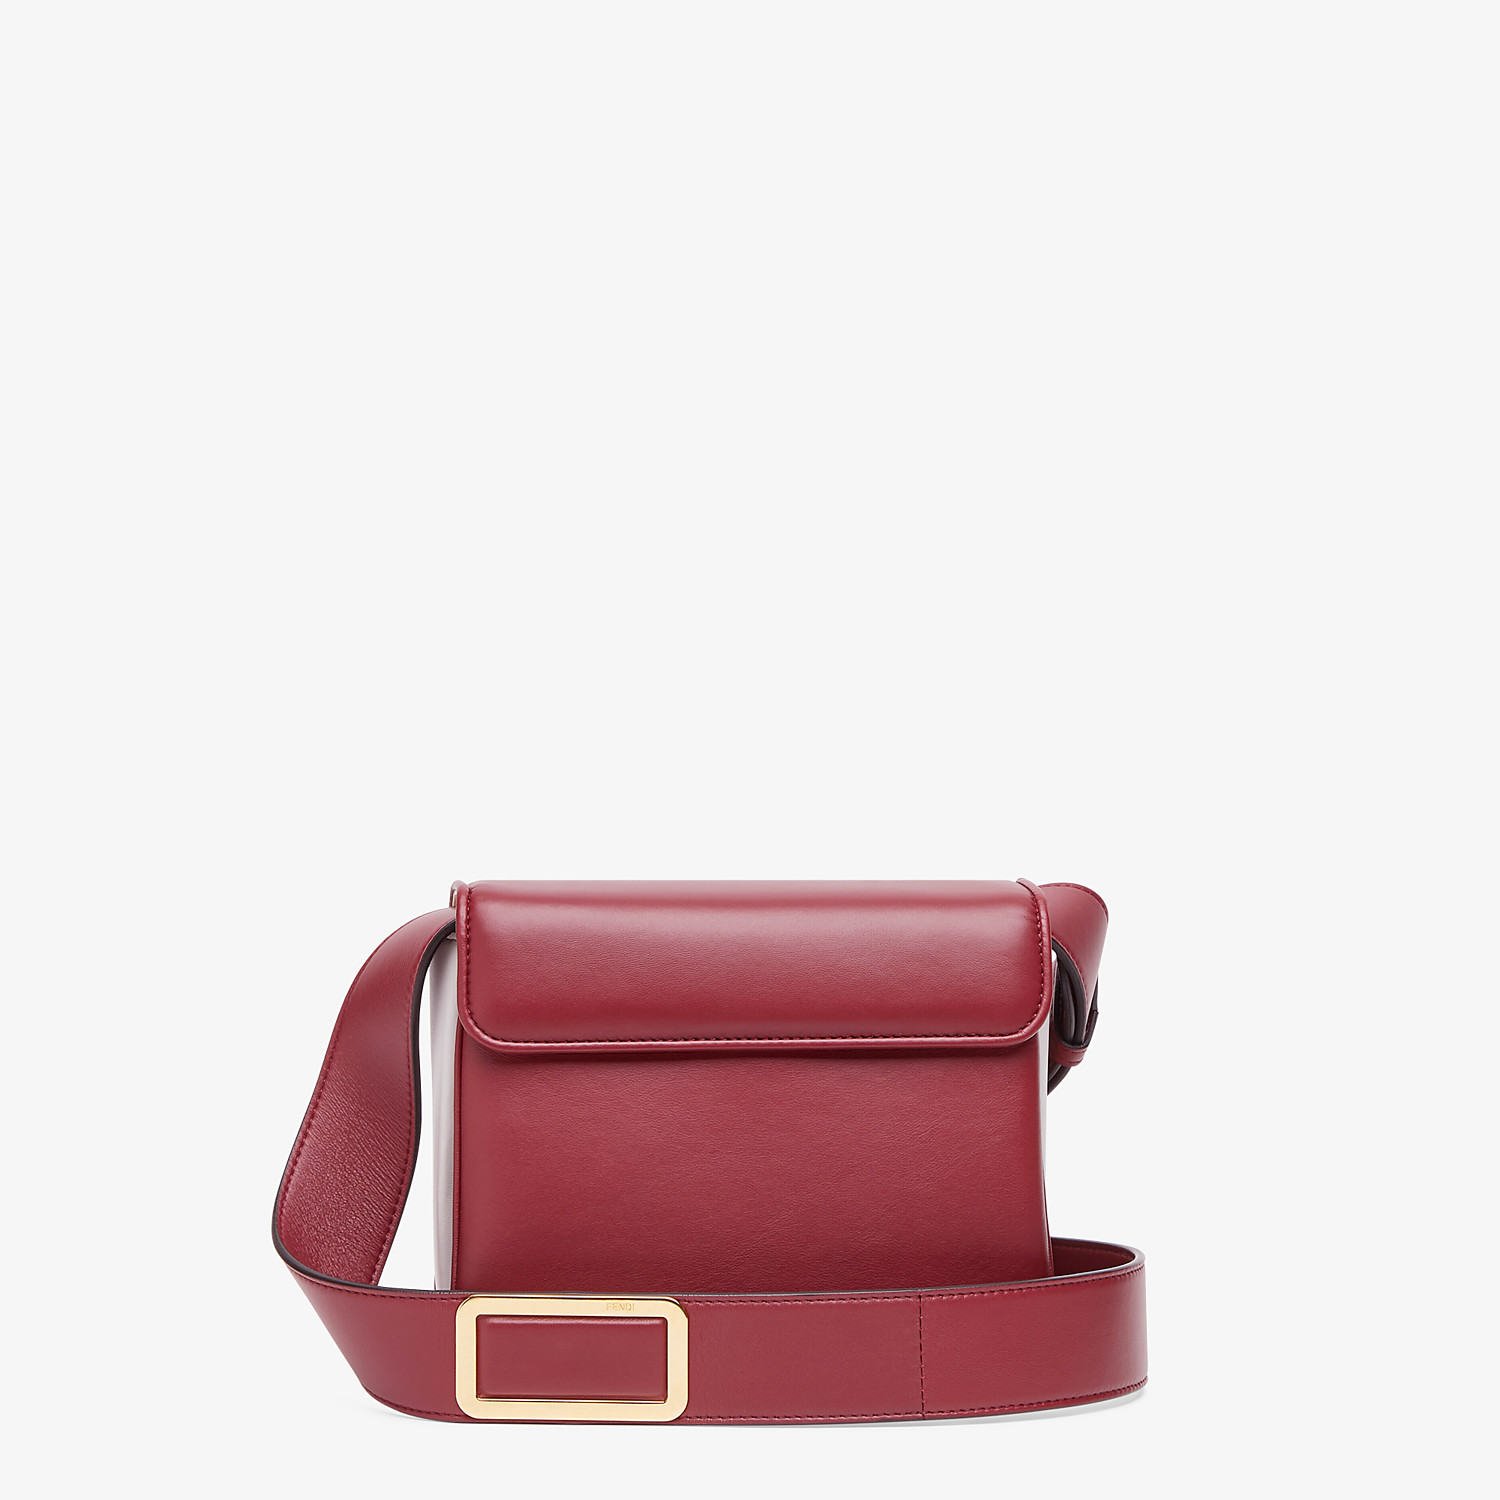 FENDI FENDI ID SMALL - Burgundy leather bag - view 4 detail